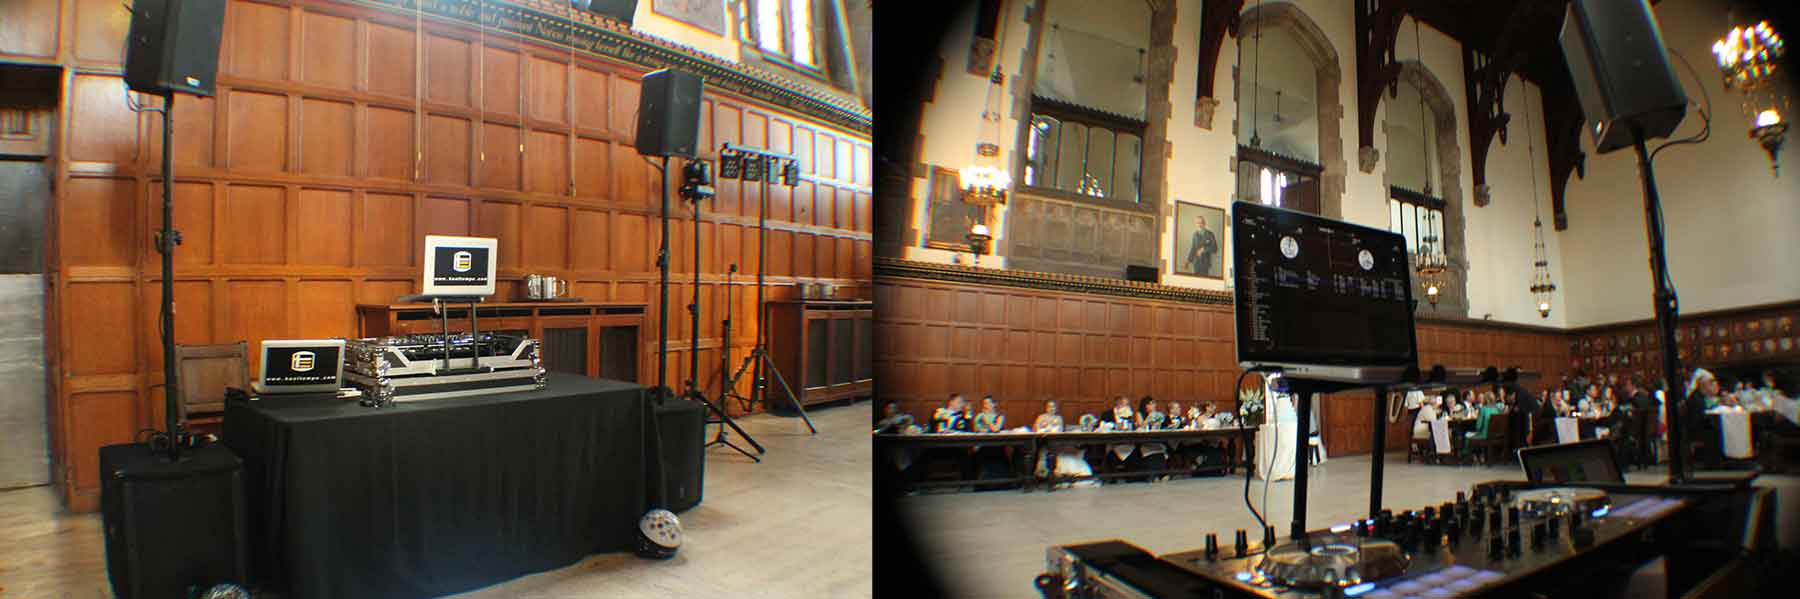 Wedding Dj Toronto at Hart House Toronto, University of Toronto, Hart House Toronto Wedding DJ